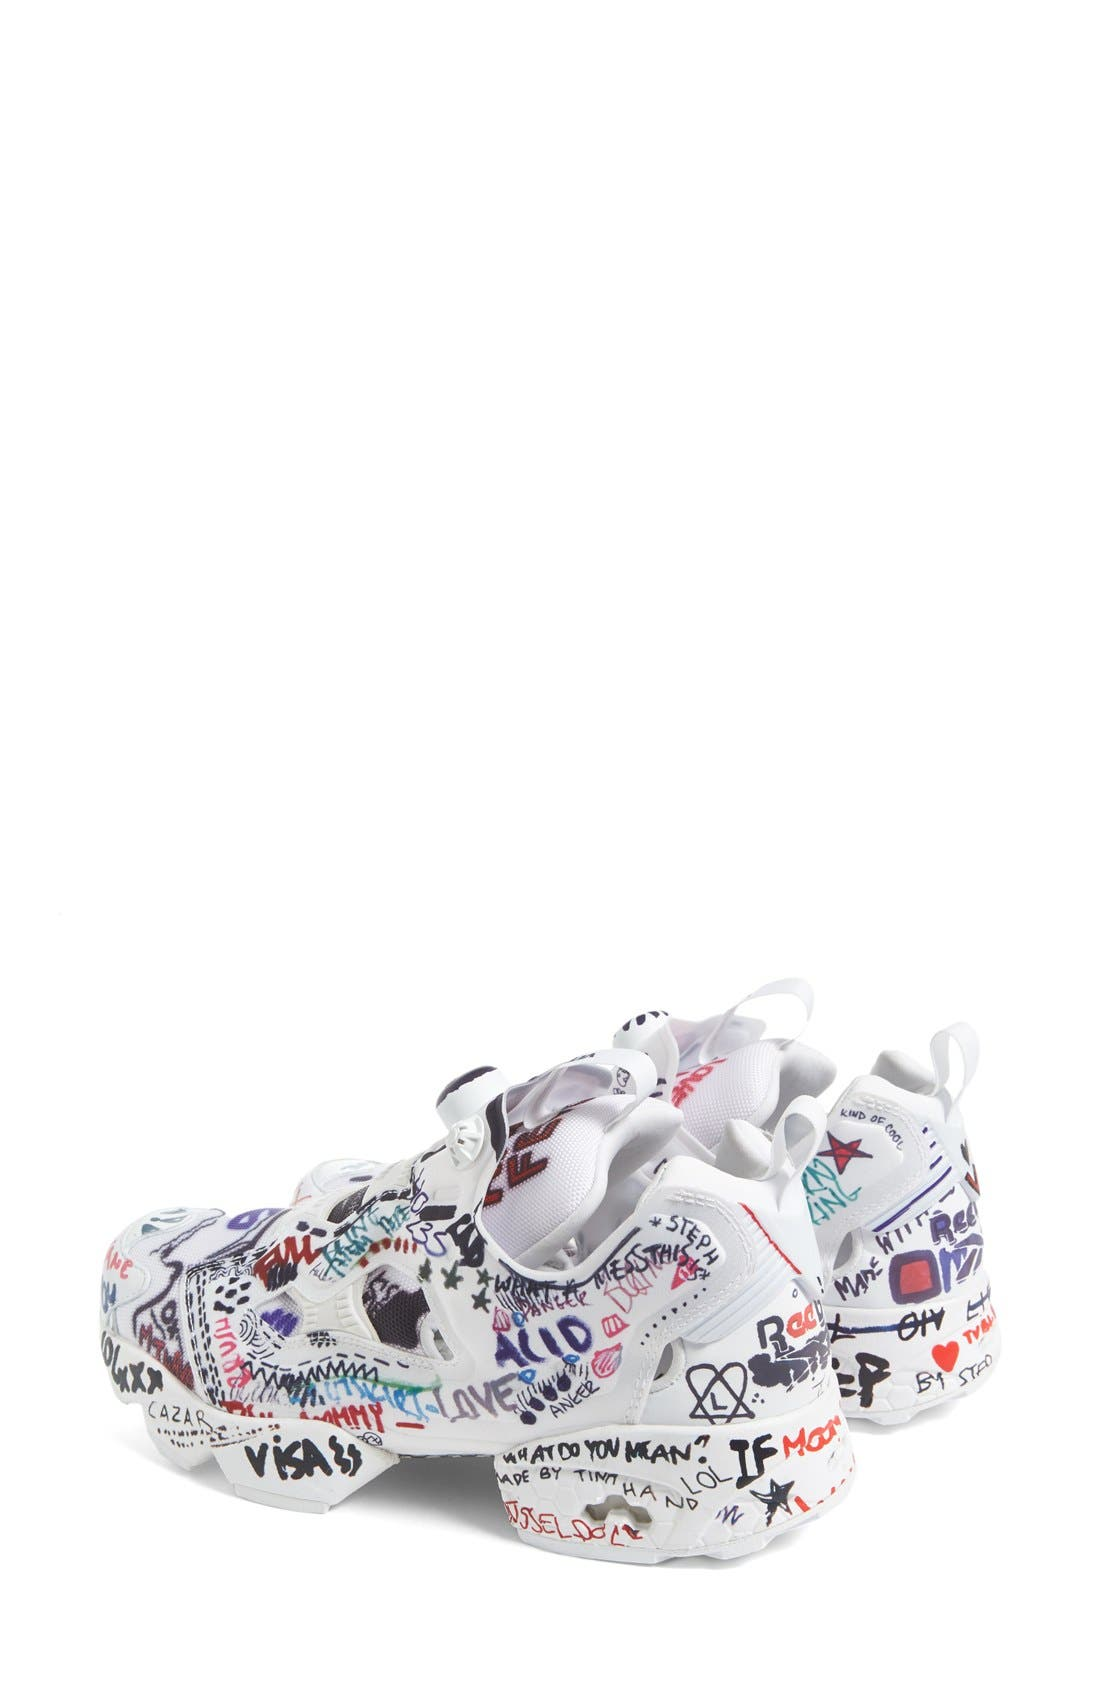 Alternate Image 2  - Vetements x Reebok Graffiti Instapump Fury Sneaker (Women)